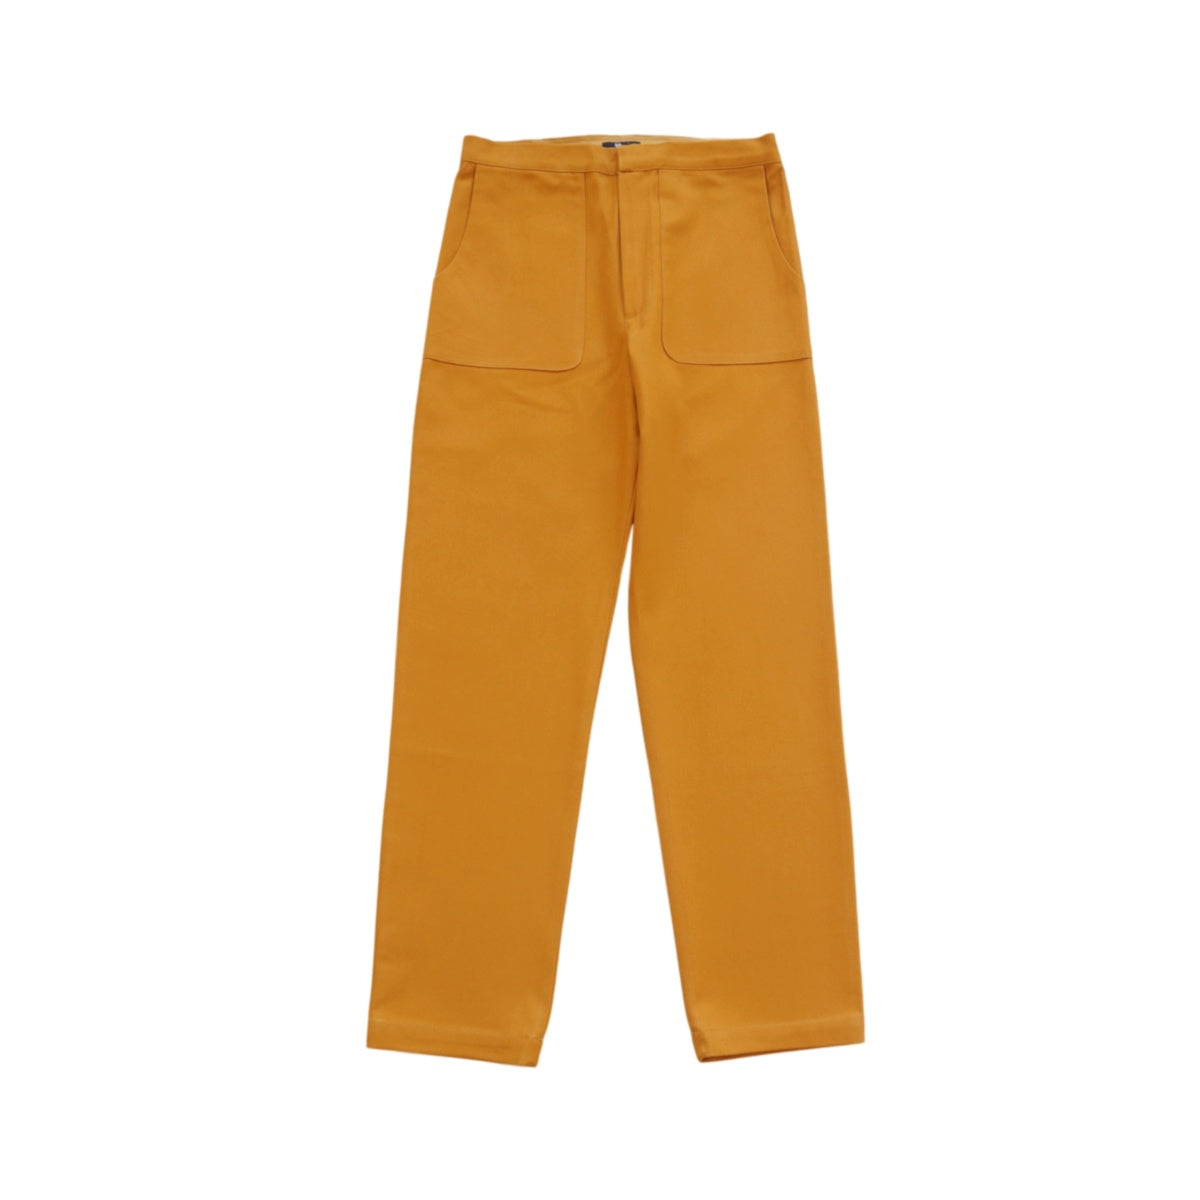 Woman Pants Rust Colchik | Zirkuss